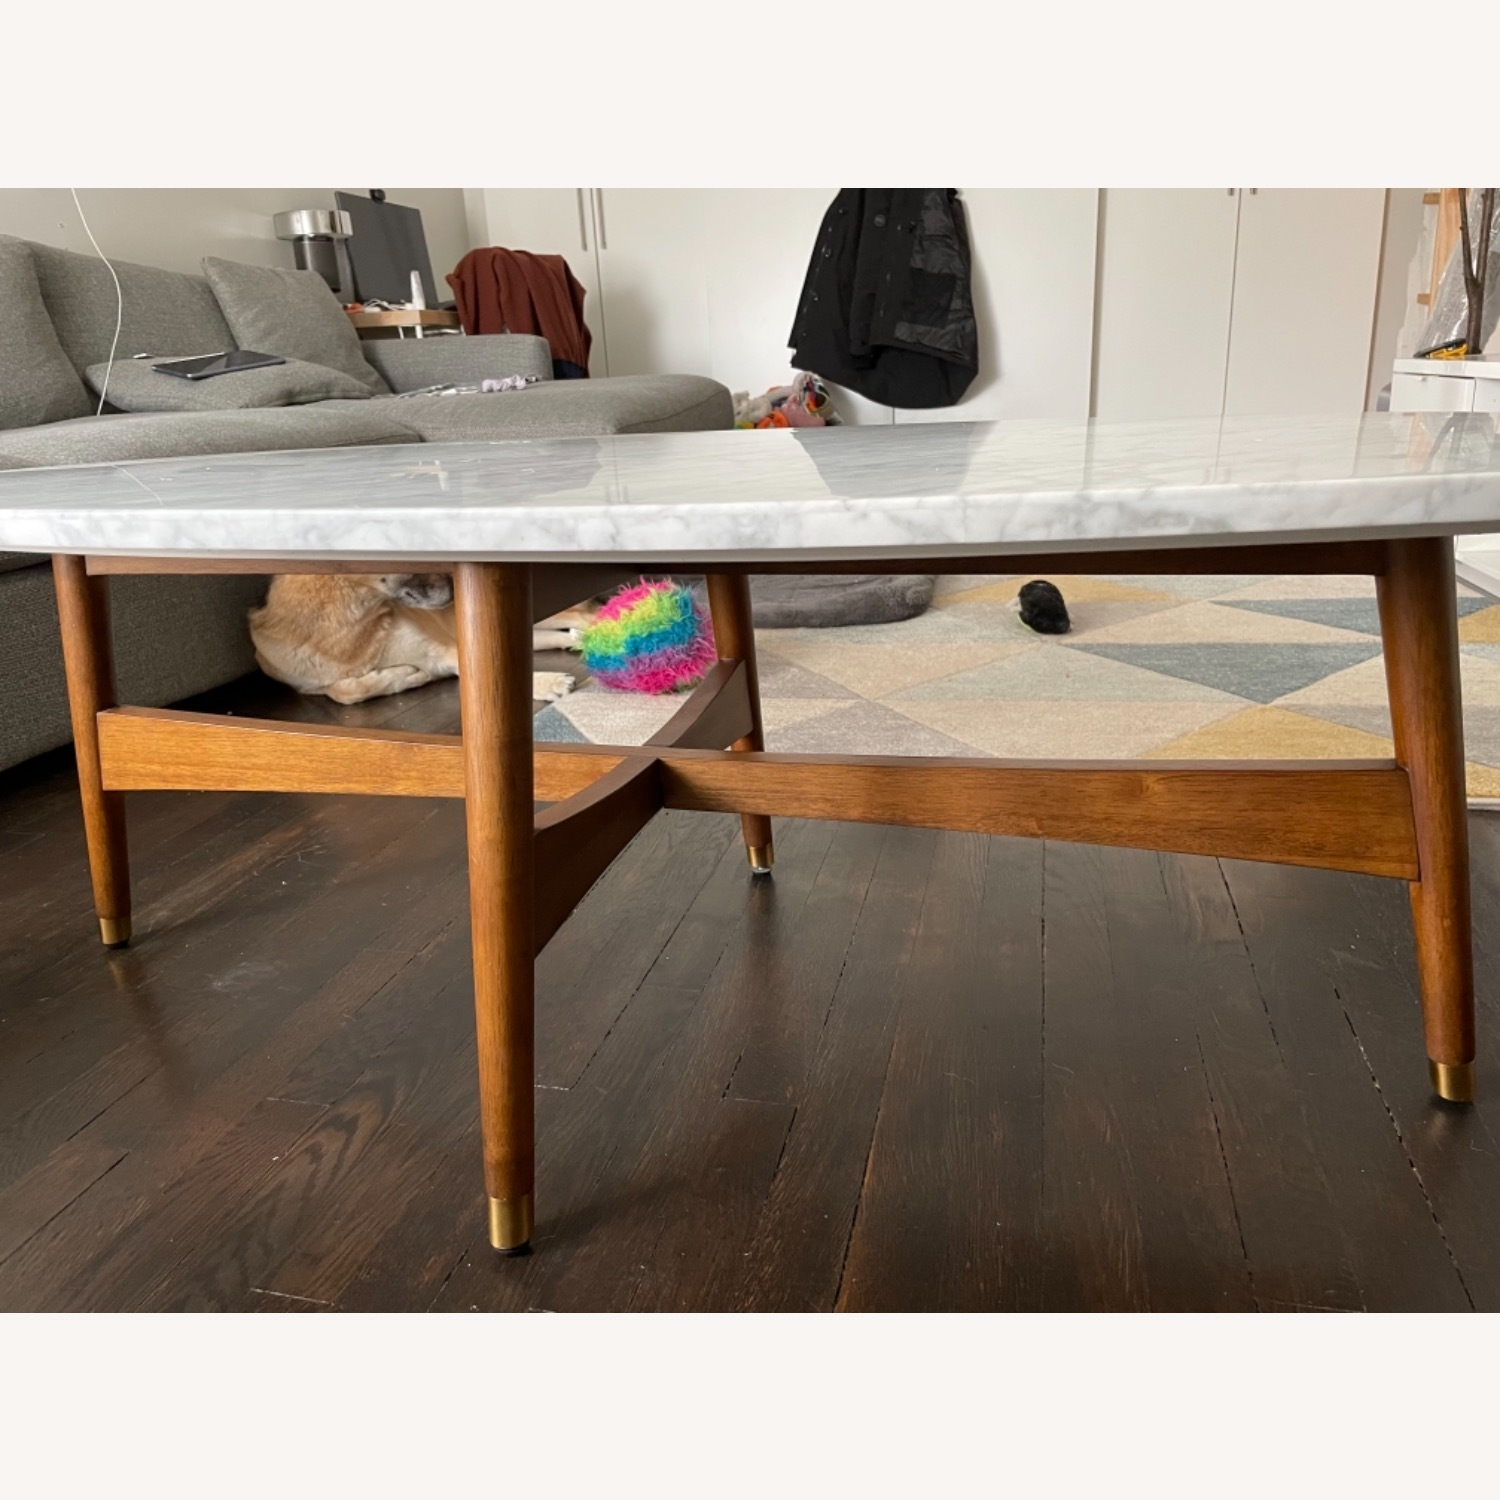 West Elm Reeve Mid-Century Oval Coffee Table - Marble Top - image-2